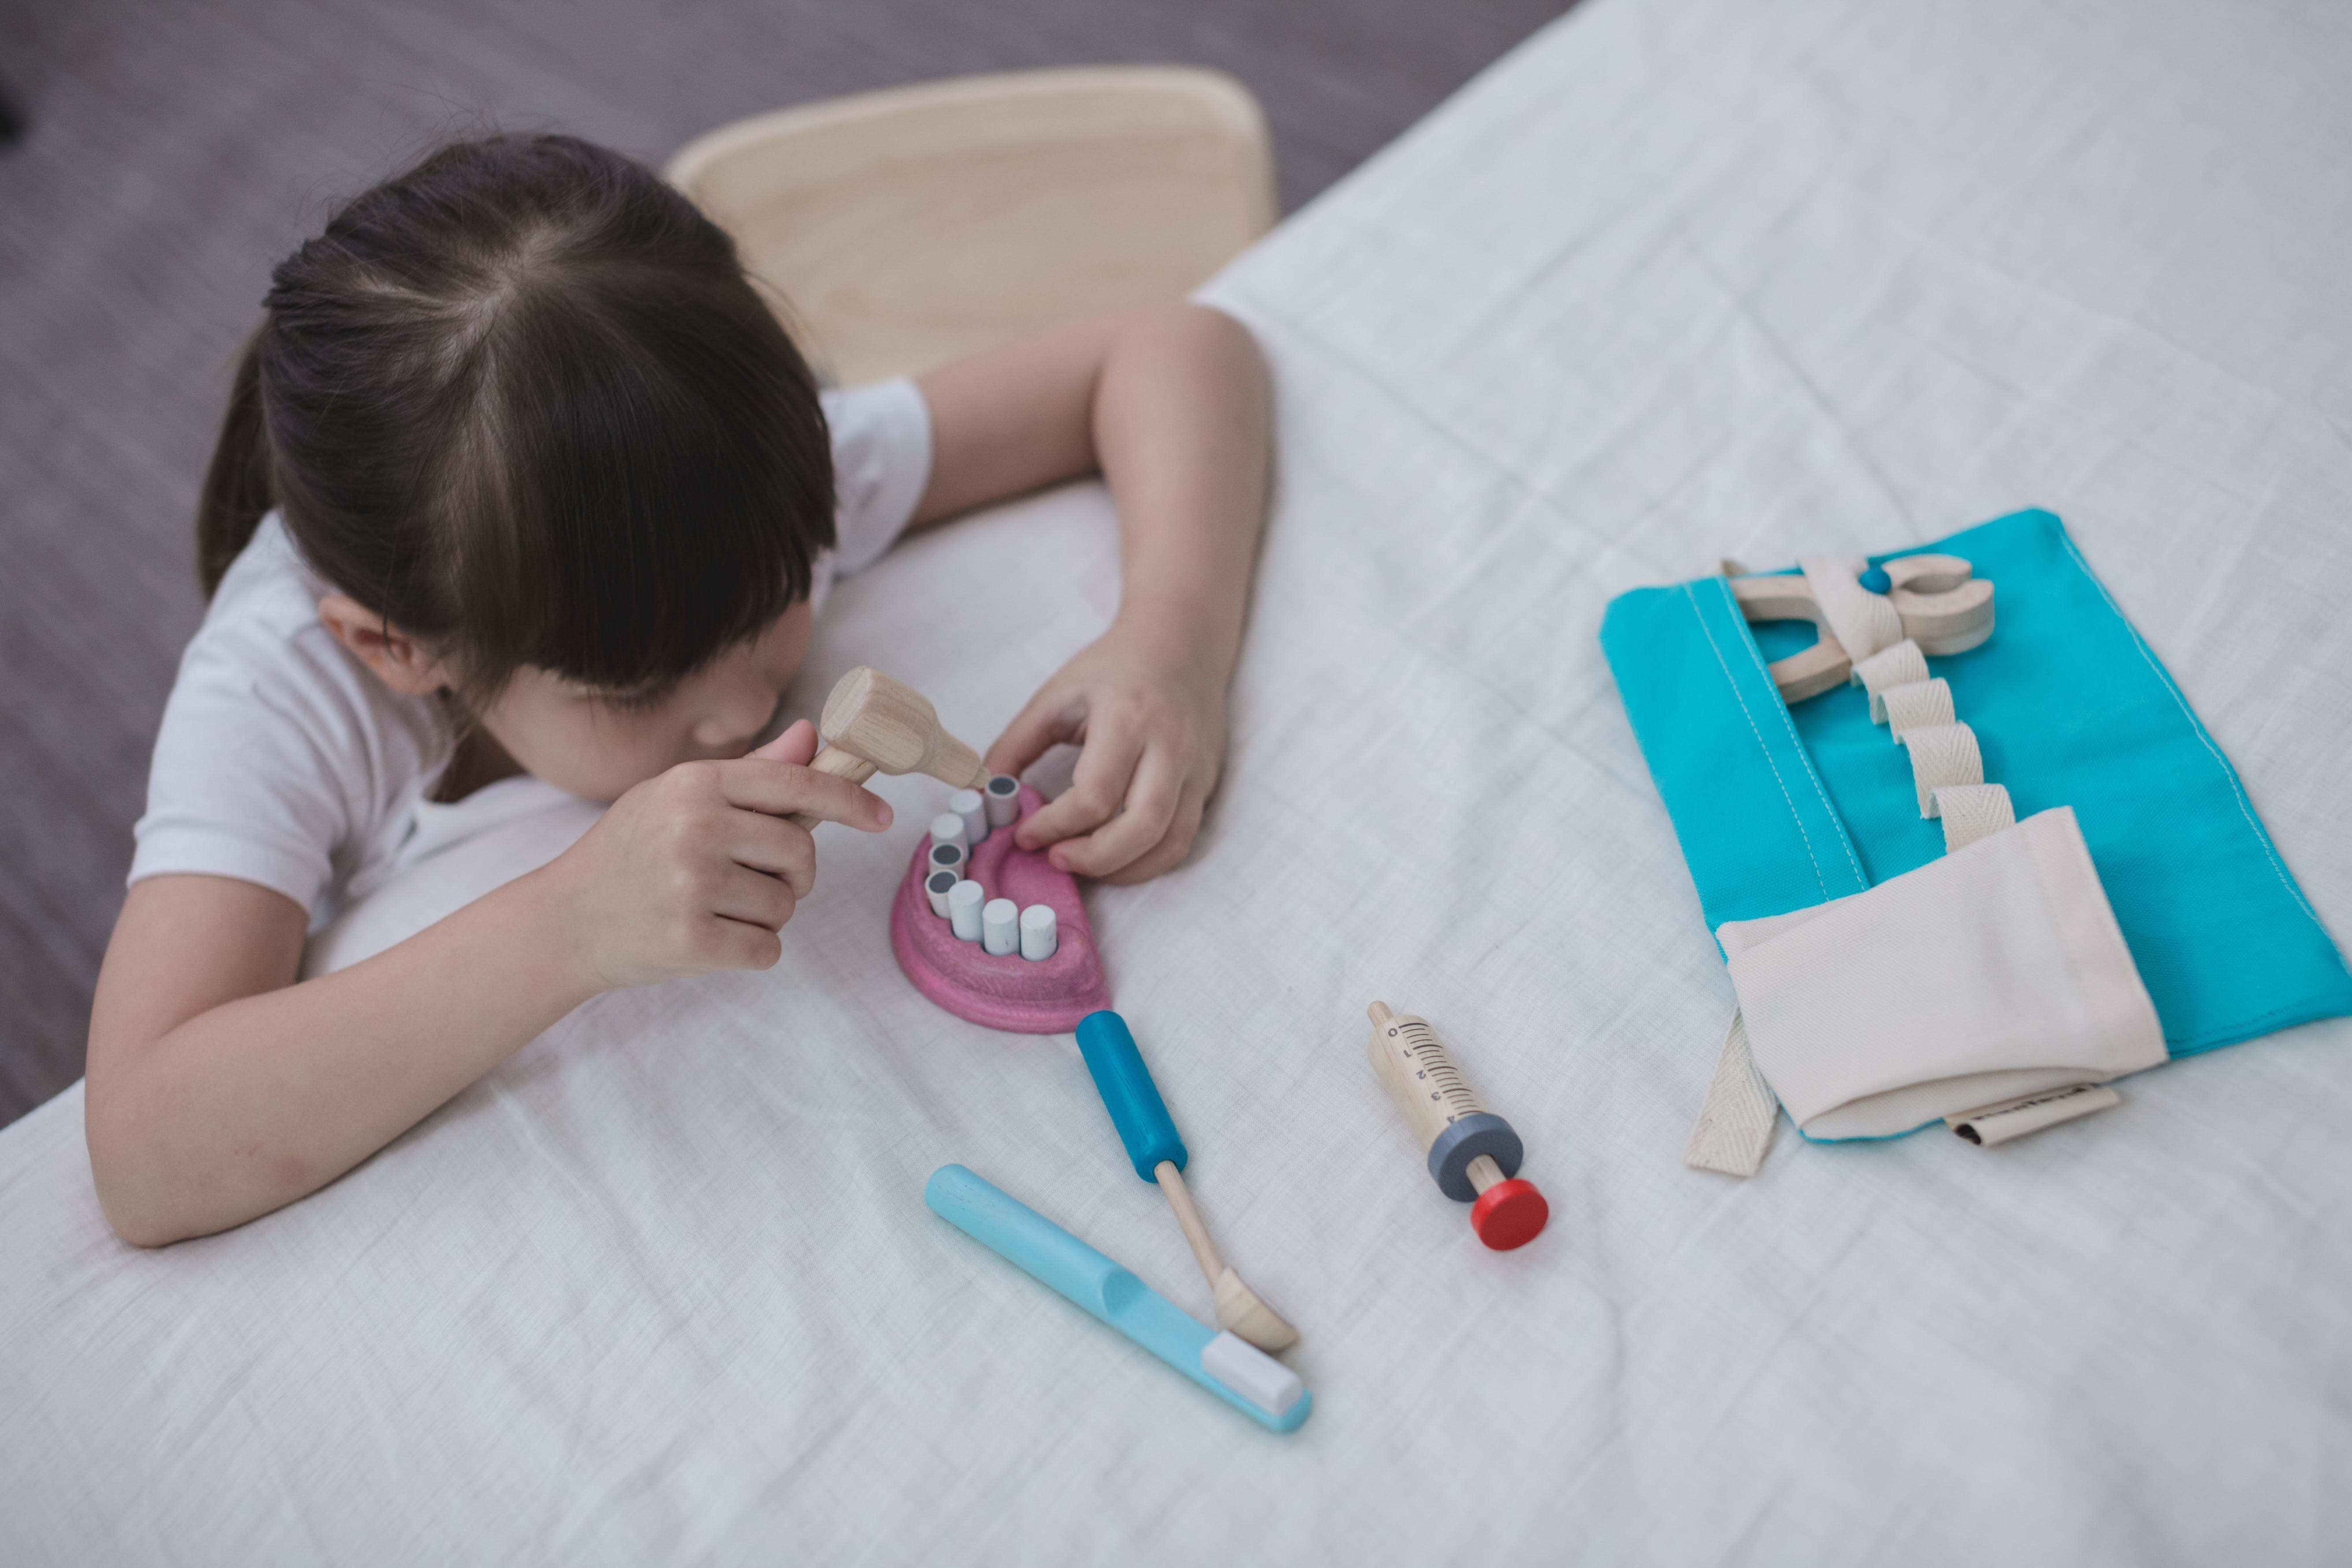 3493_PlanToys_DENTIST_SET_Pretend_Play_Coordination_Fine_Motor_Imagination_Social_Language_and_Communications_3yrs_Wooden_toys_Education_toys_Safety_Toys_Non-toxic_6.jpg